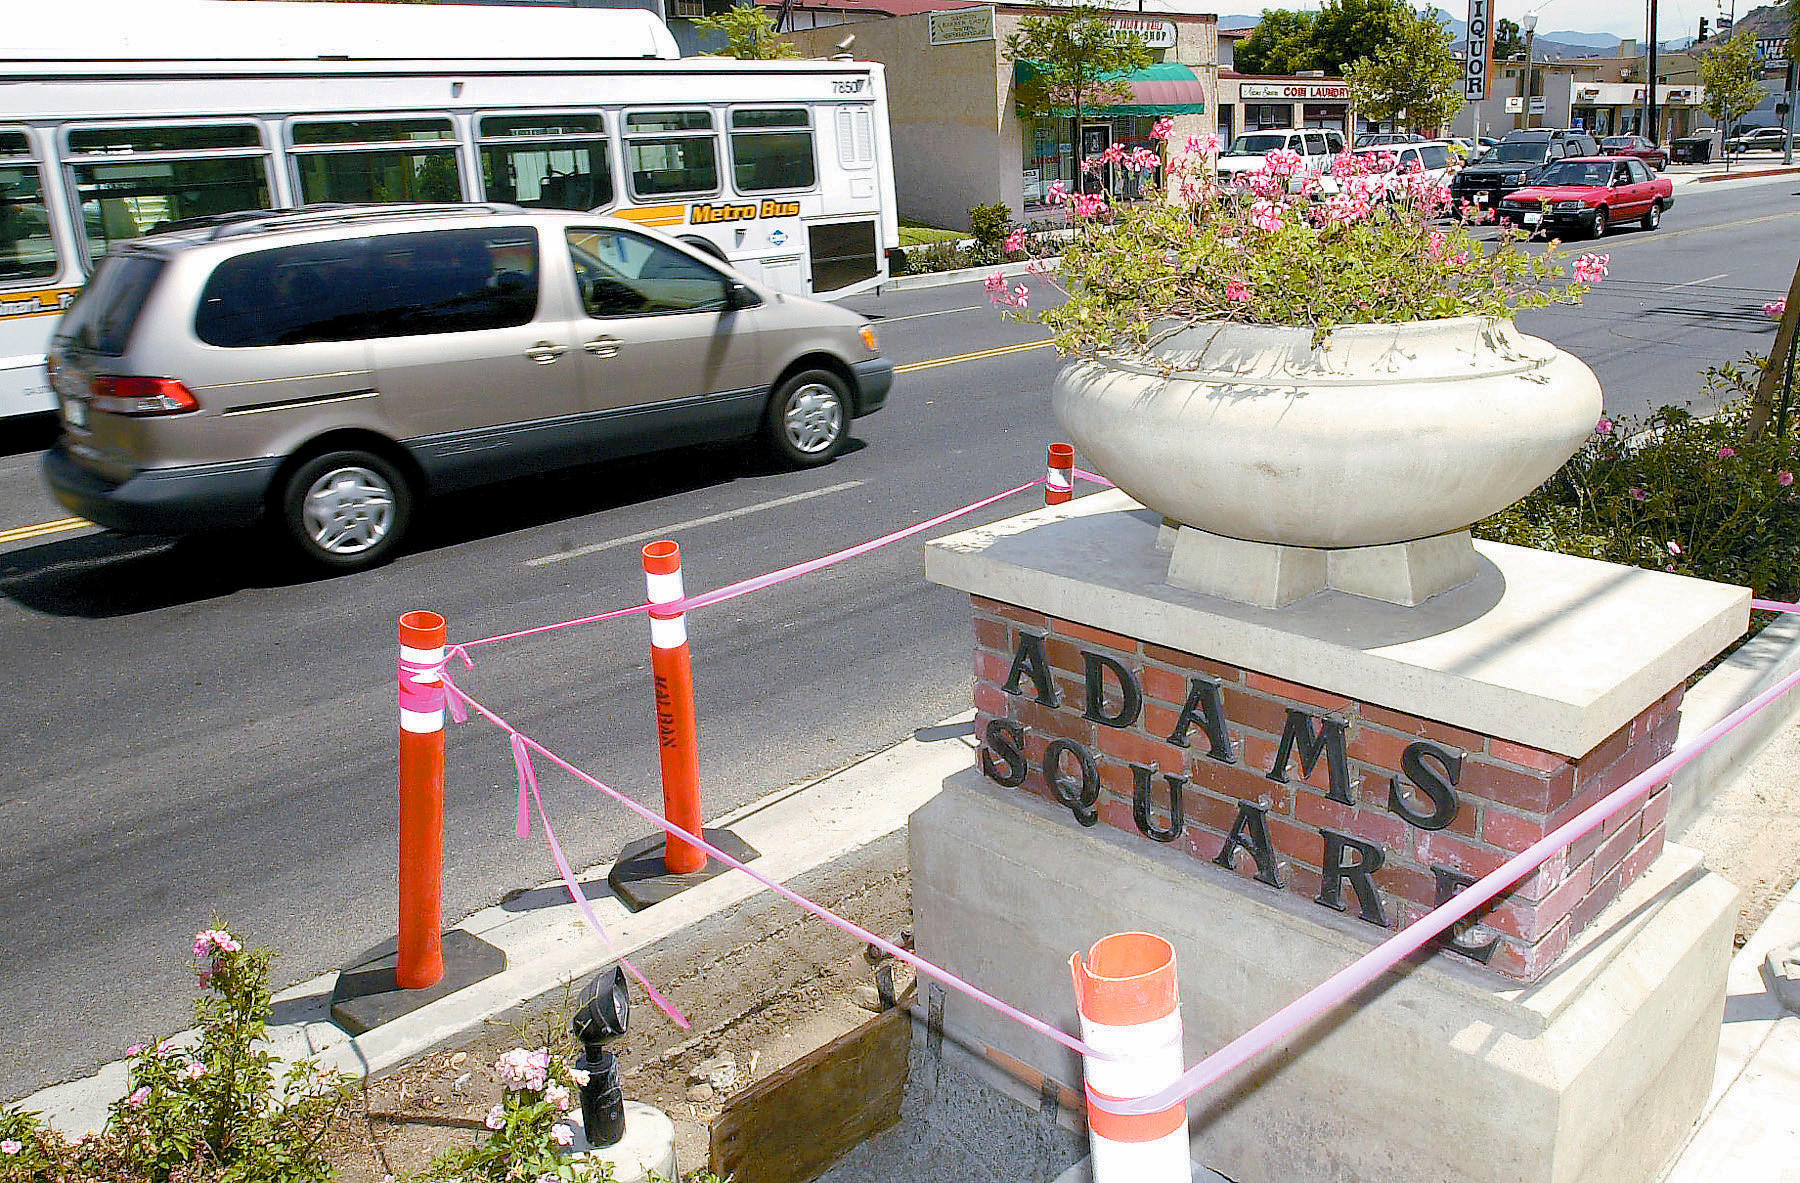 City Council this week approved moving forward to suspend Adams Squares designation as a Business Improvement District for another year, which means businesses there will have no levy assessments and it gives business owners time to reactivate the designation, if they choose.